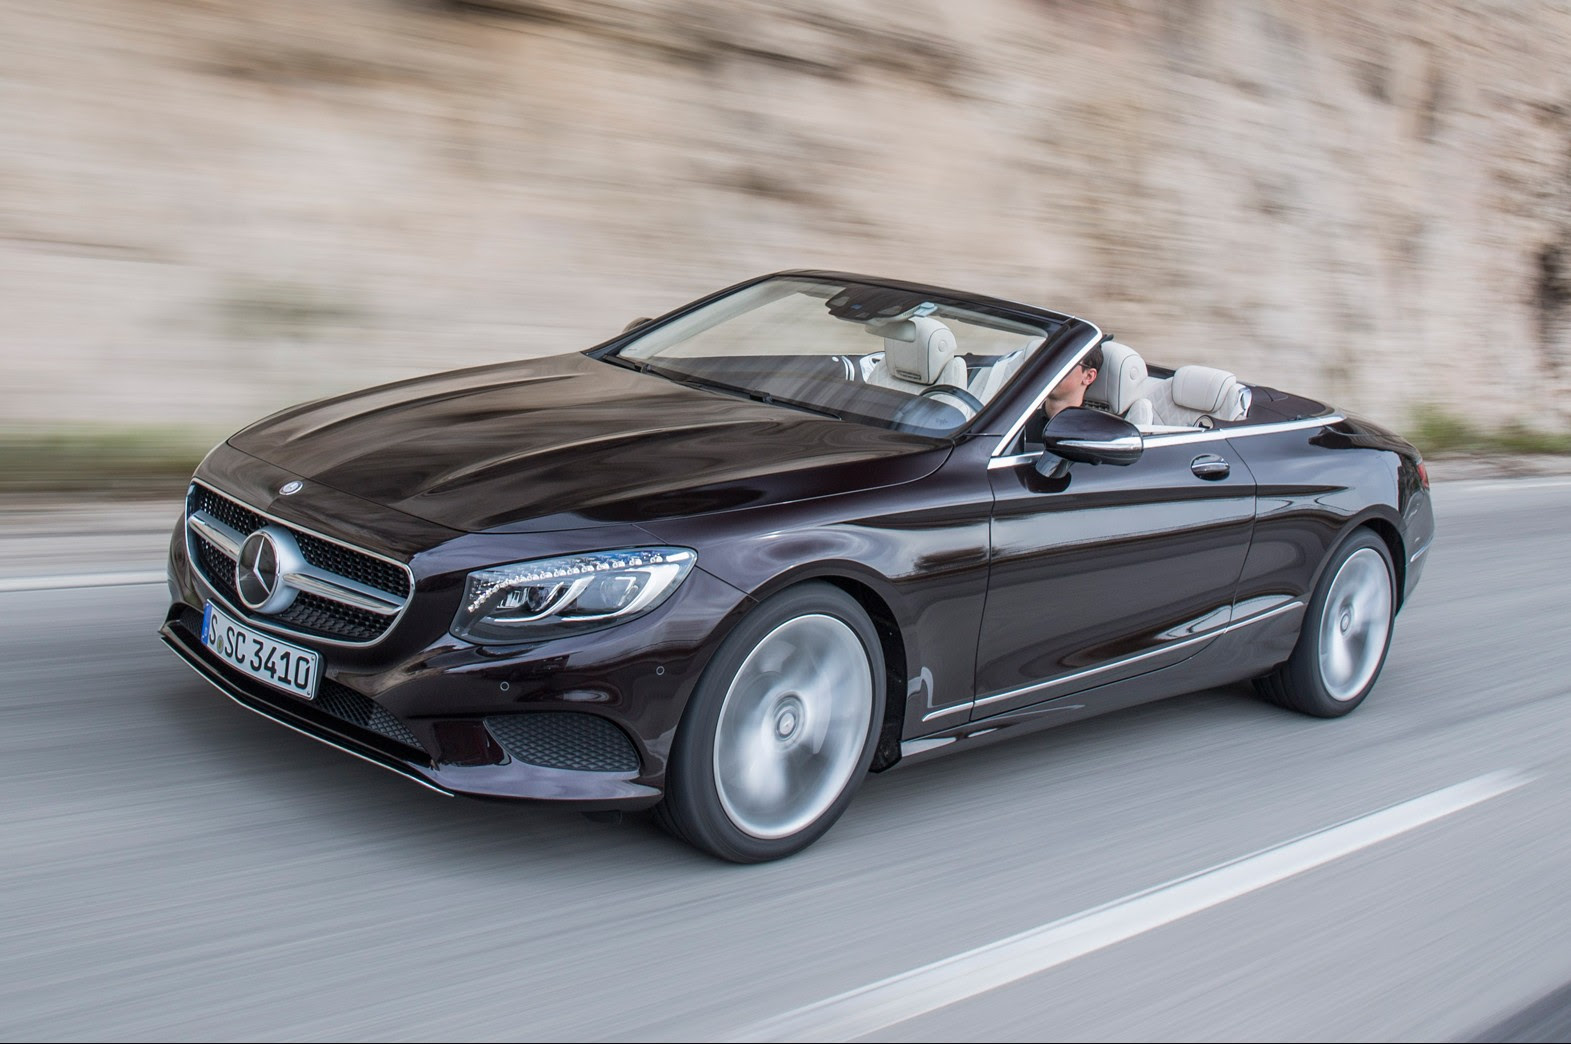 2017 Mercedes-Benz S-Class Cabriolet First Drive Review ...